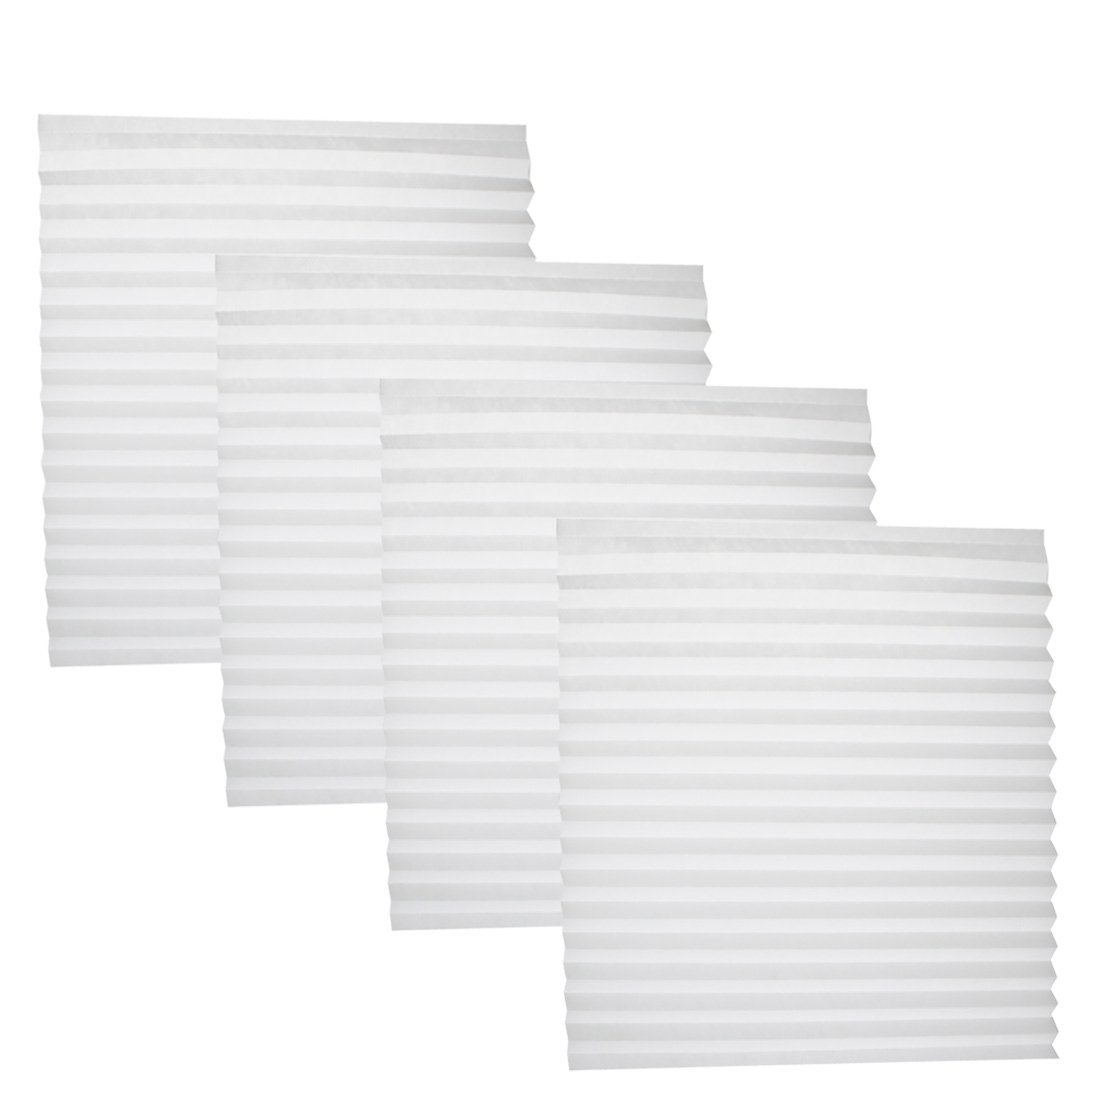 """JET-BOND JJ25 Pleated Paper Blind Shade Shutters White Free Stainless Steel Clips 74.8"""" Long 35.4"""" Wide (white, 4 PCS)"""